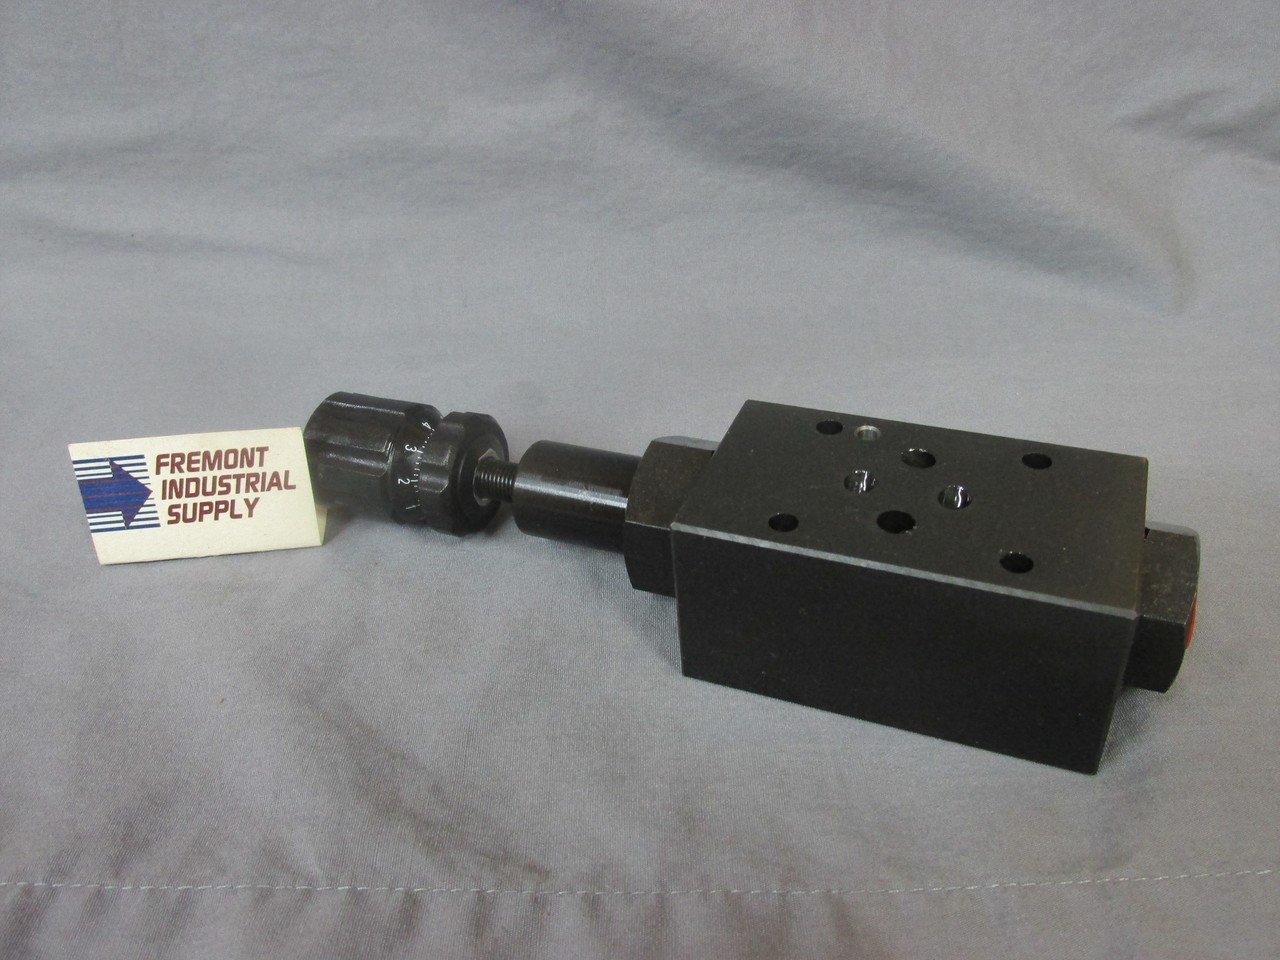 (Qty of 1) D05 Modular hydraulic counterbalance valve 500-2000 PSI adjustment range  Power Valve USA